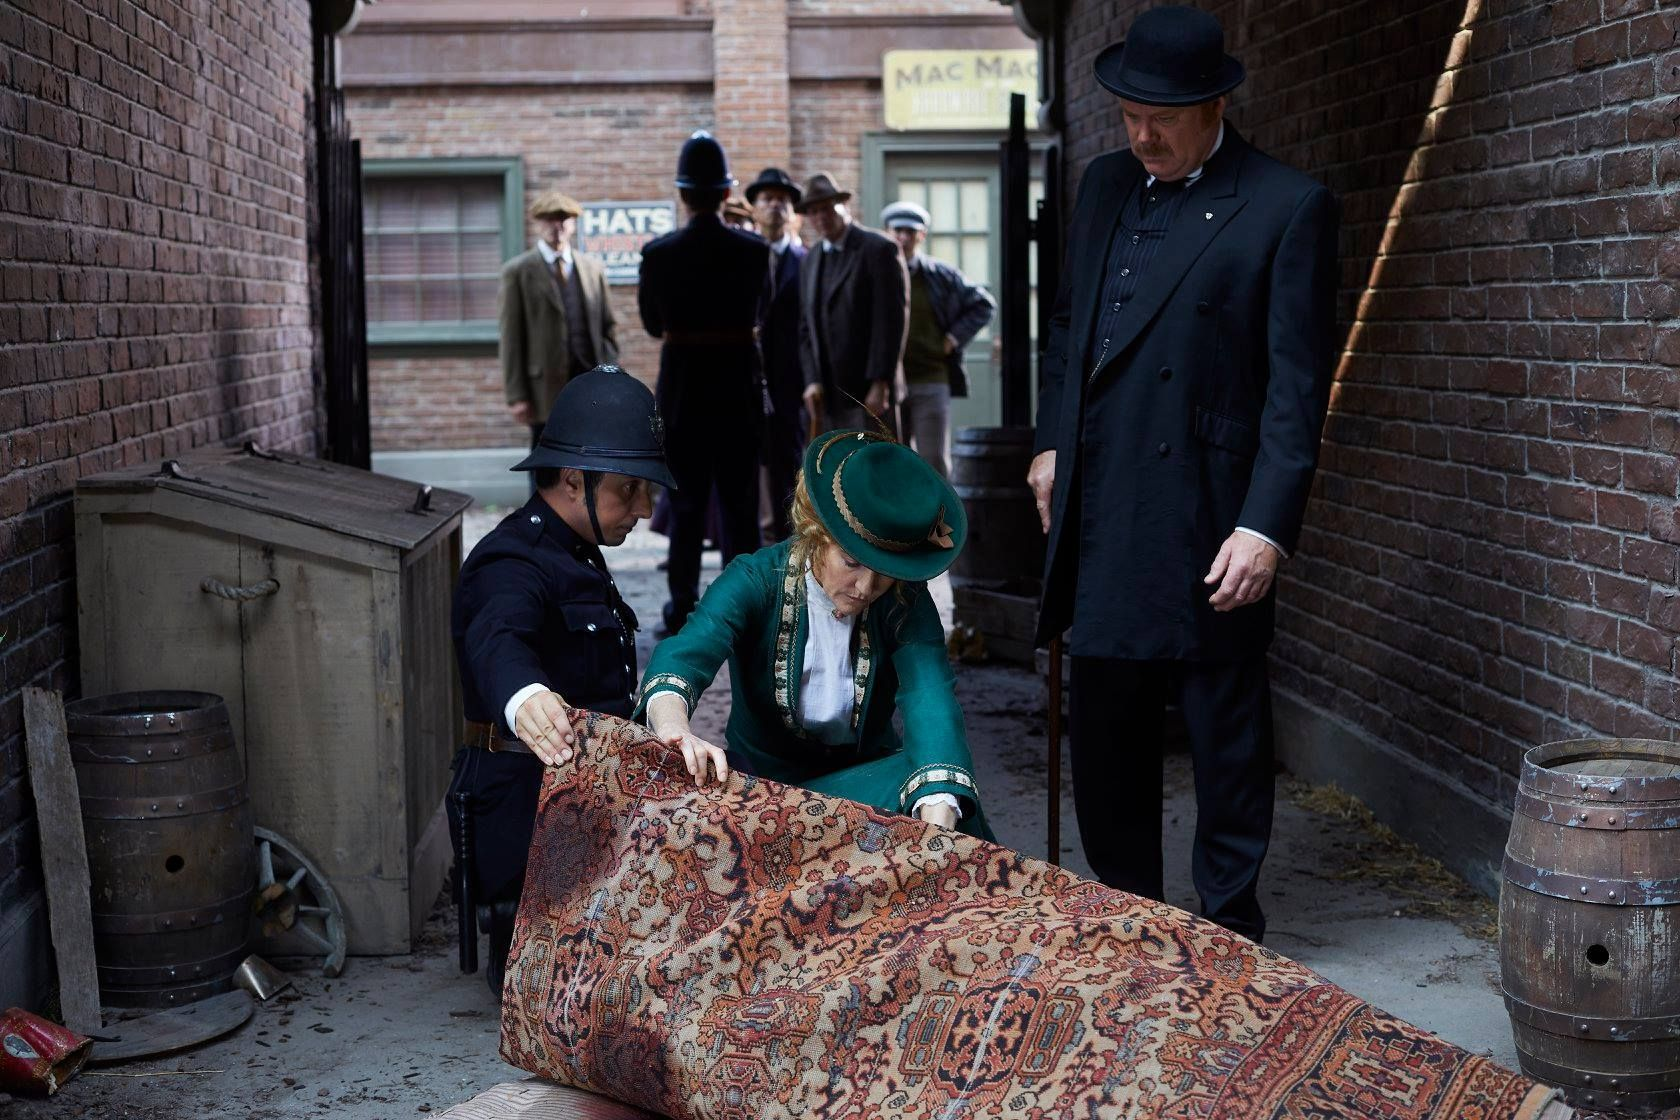 Constable Crabtree (Jonny Harris) shows Doctor Ogden (Hélène Joy) the dead body as Inspector Brackenreid (Thomas Craig) stands to the side.